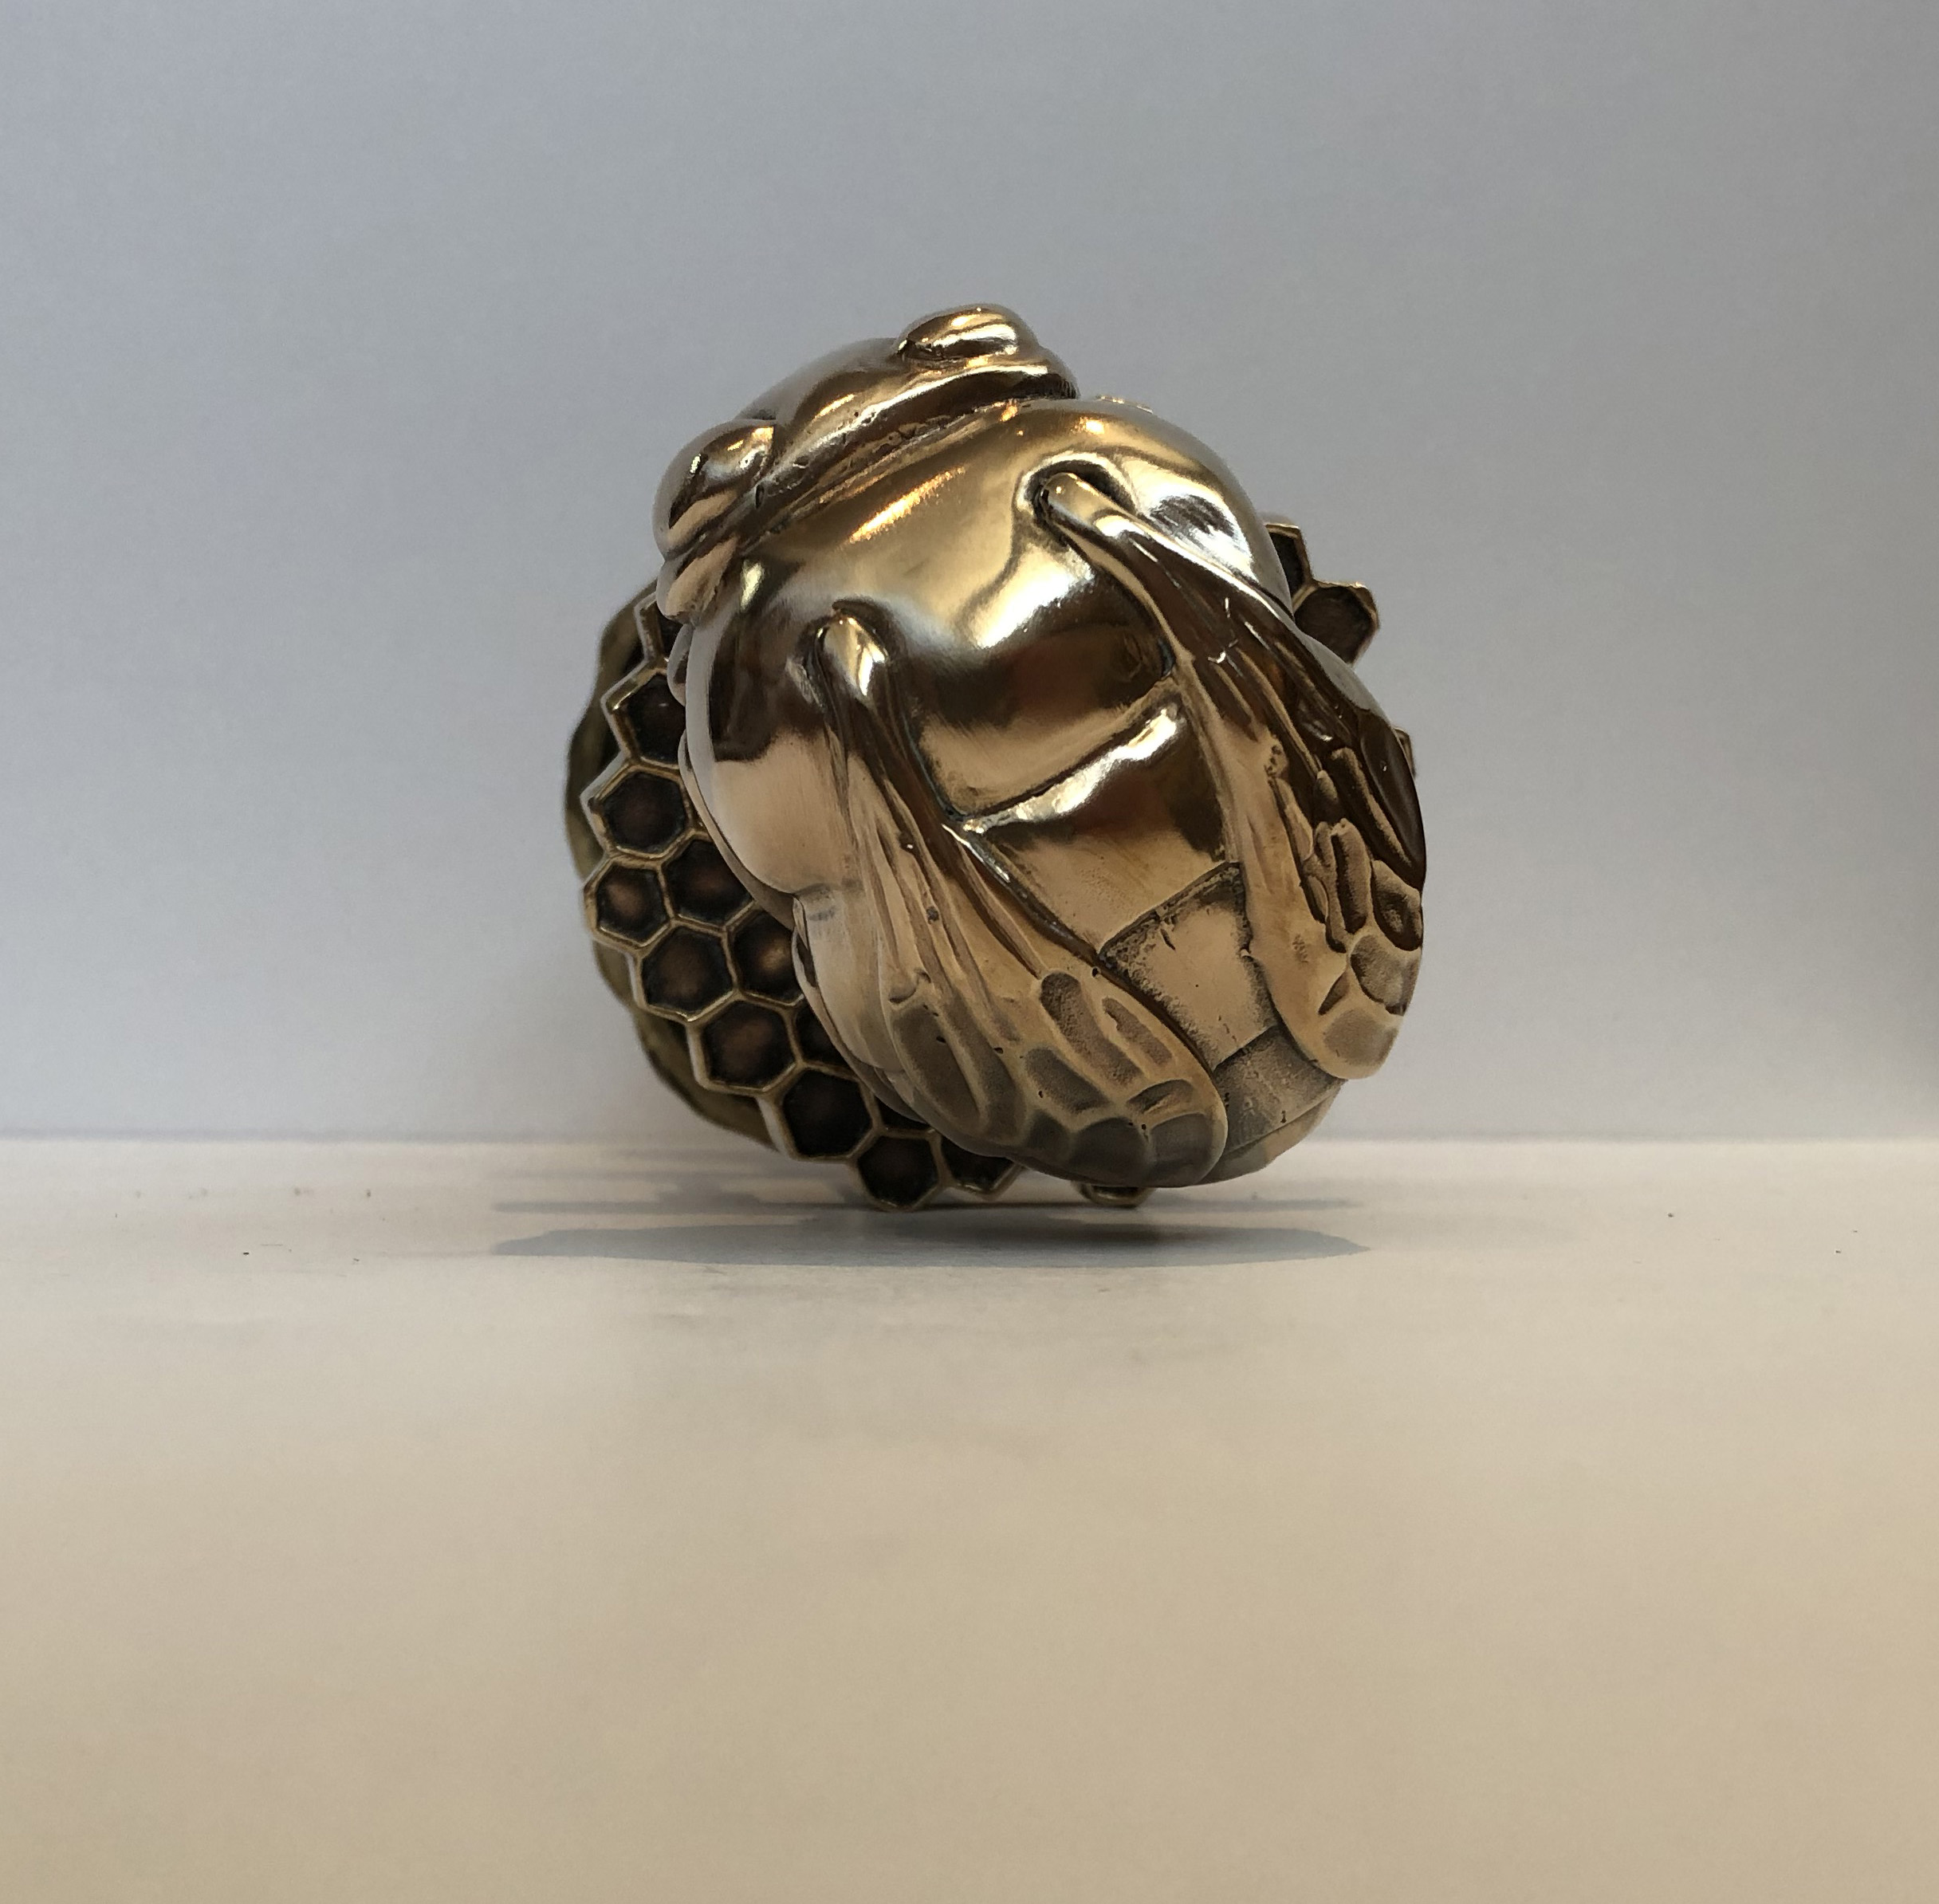 Center piece in our Netsuke collection of animal knobs